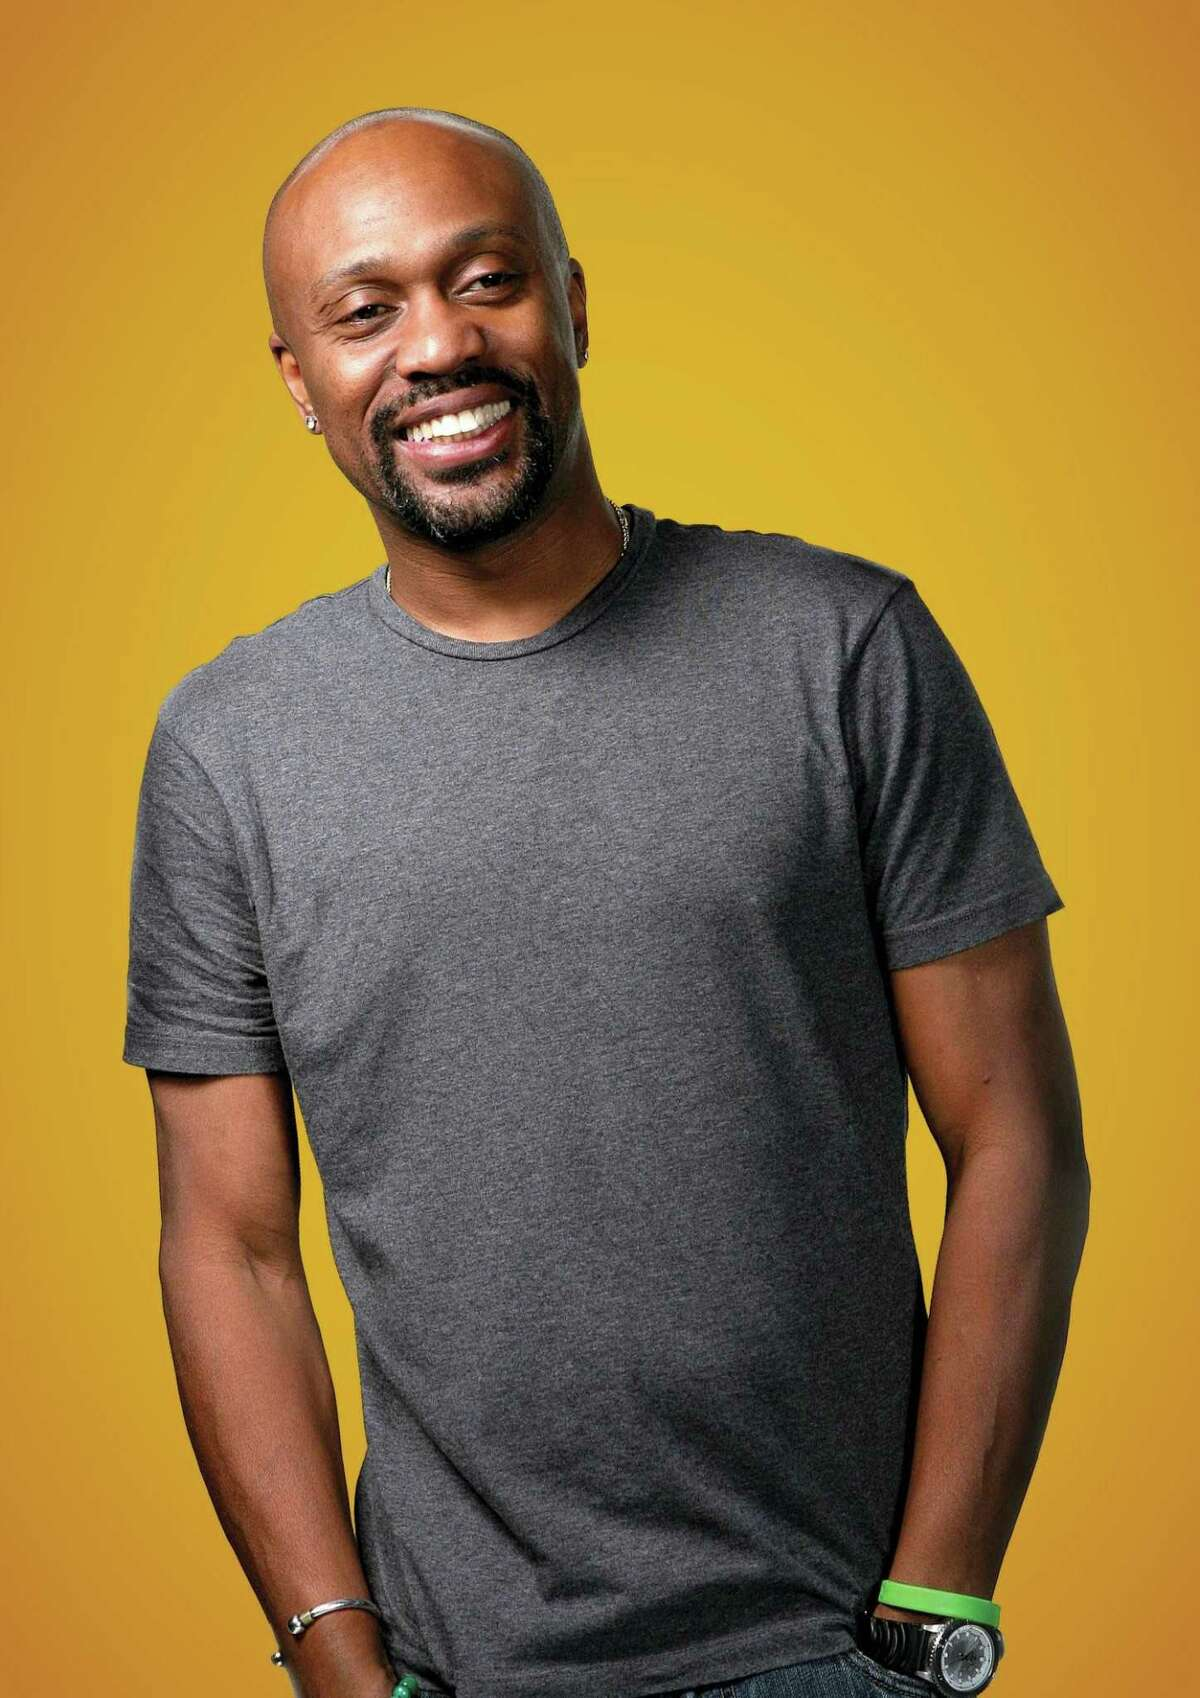 Comedian Tony Woods will perform five shows at The Stress Factory in Bridgeport, Dec. 10-12.